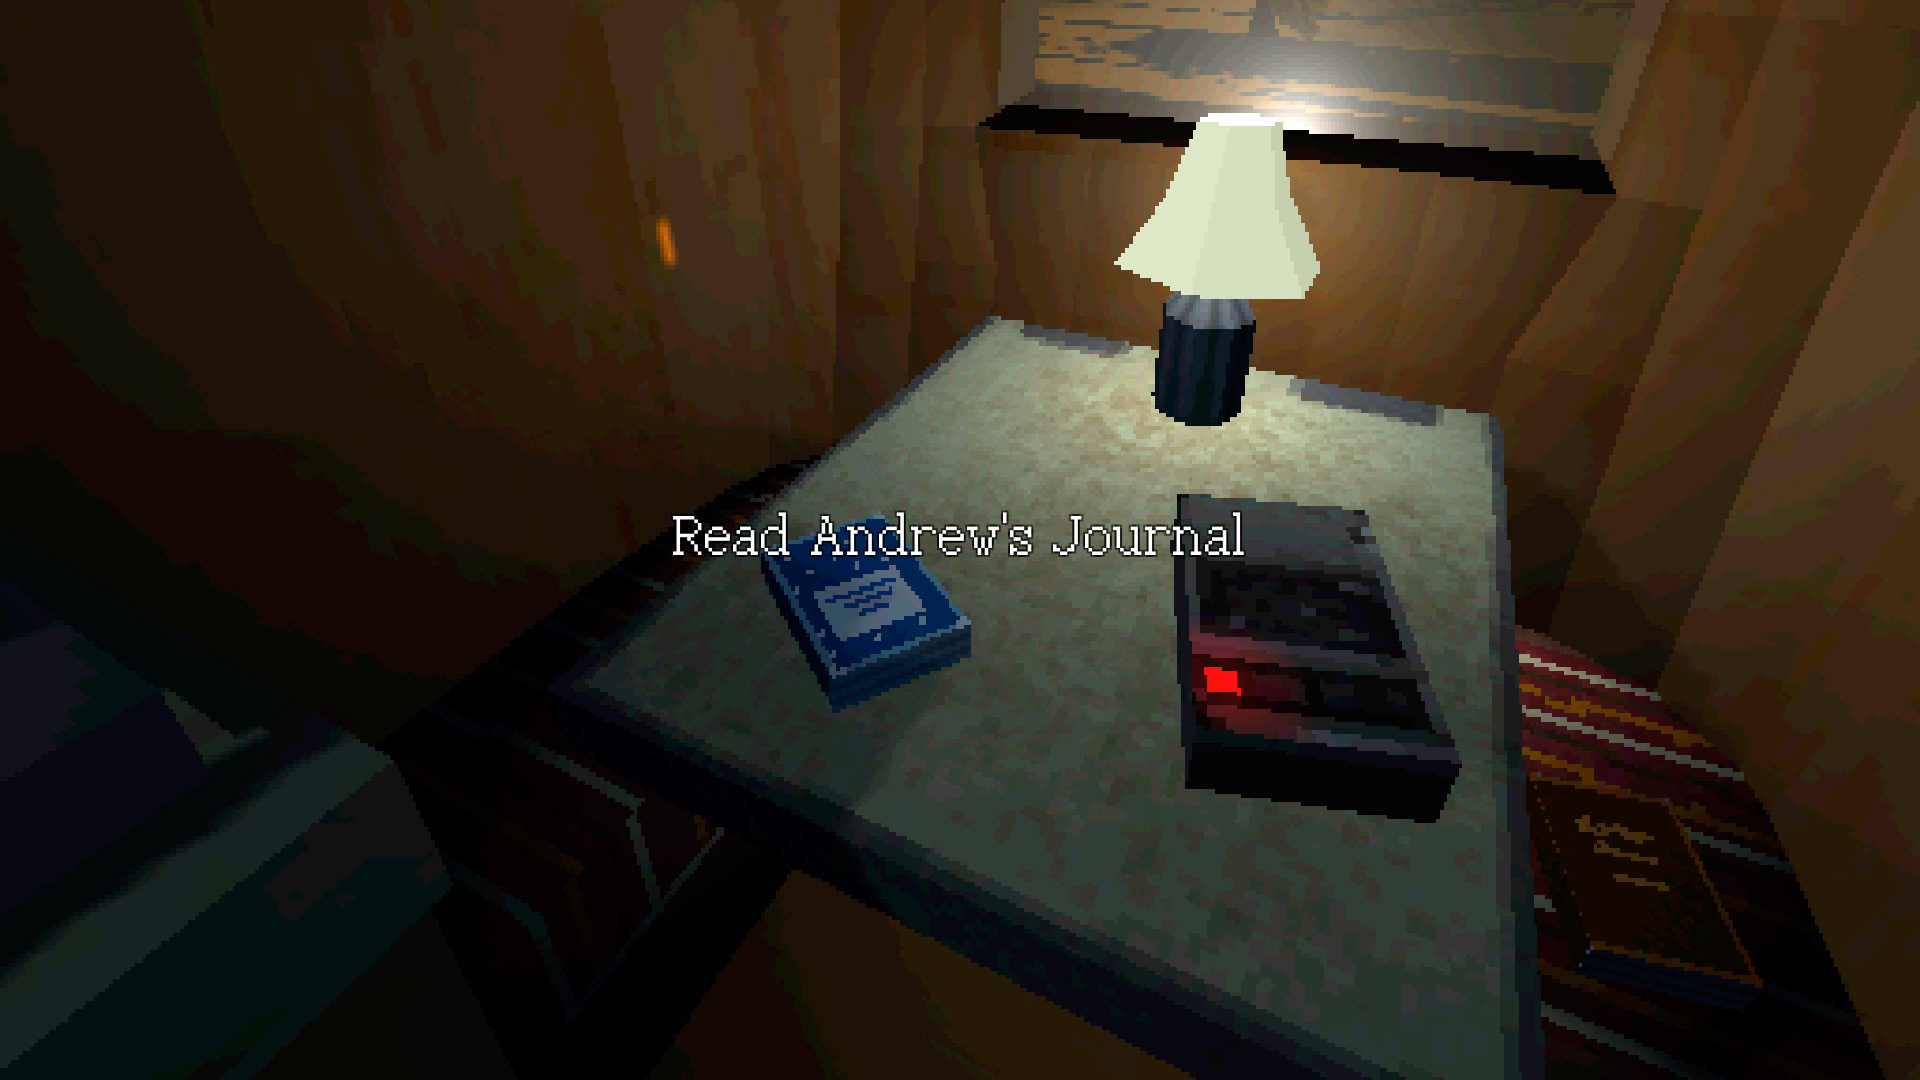 3D, adventure, exploration, first-person, Horror, indie, PS4, PS4 Review, Ratalaika Games, Rating 9/10, Redact Games, Sagebrush, Sagebrush Review, Story Rich, Video Game, Video Game Review